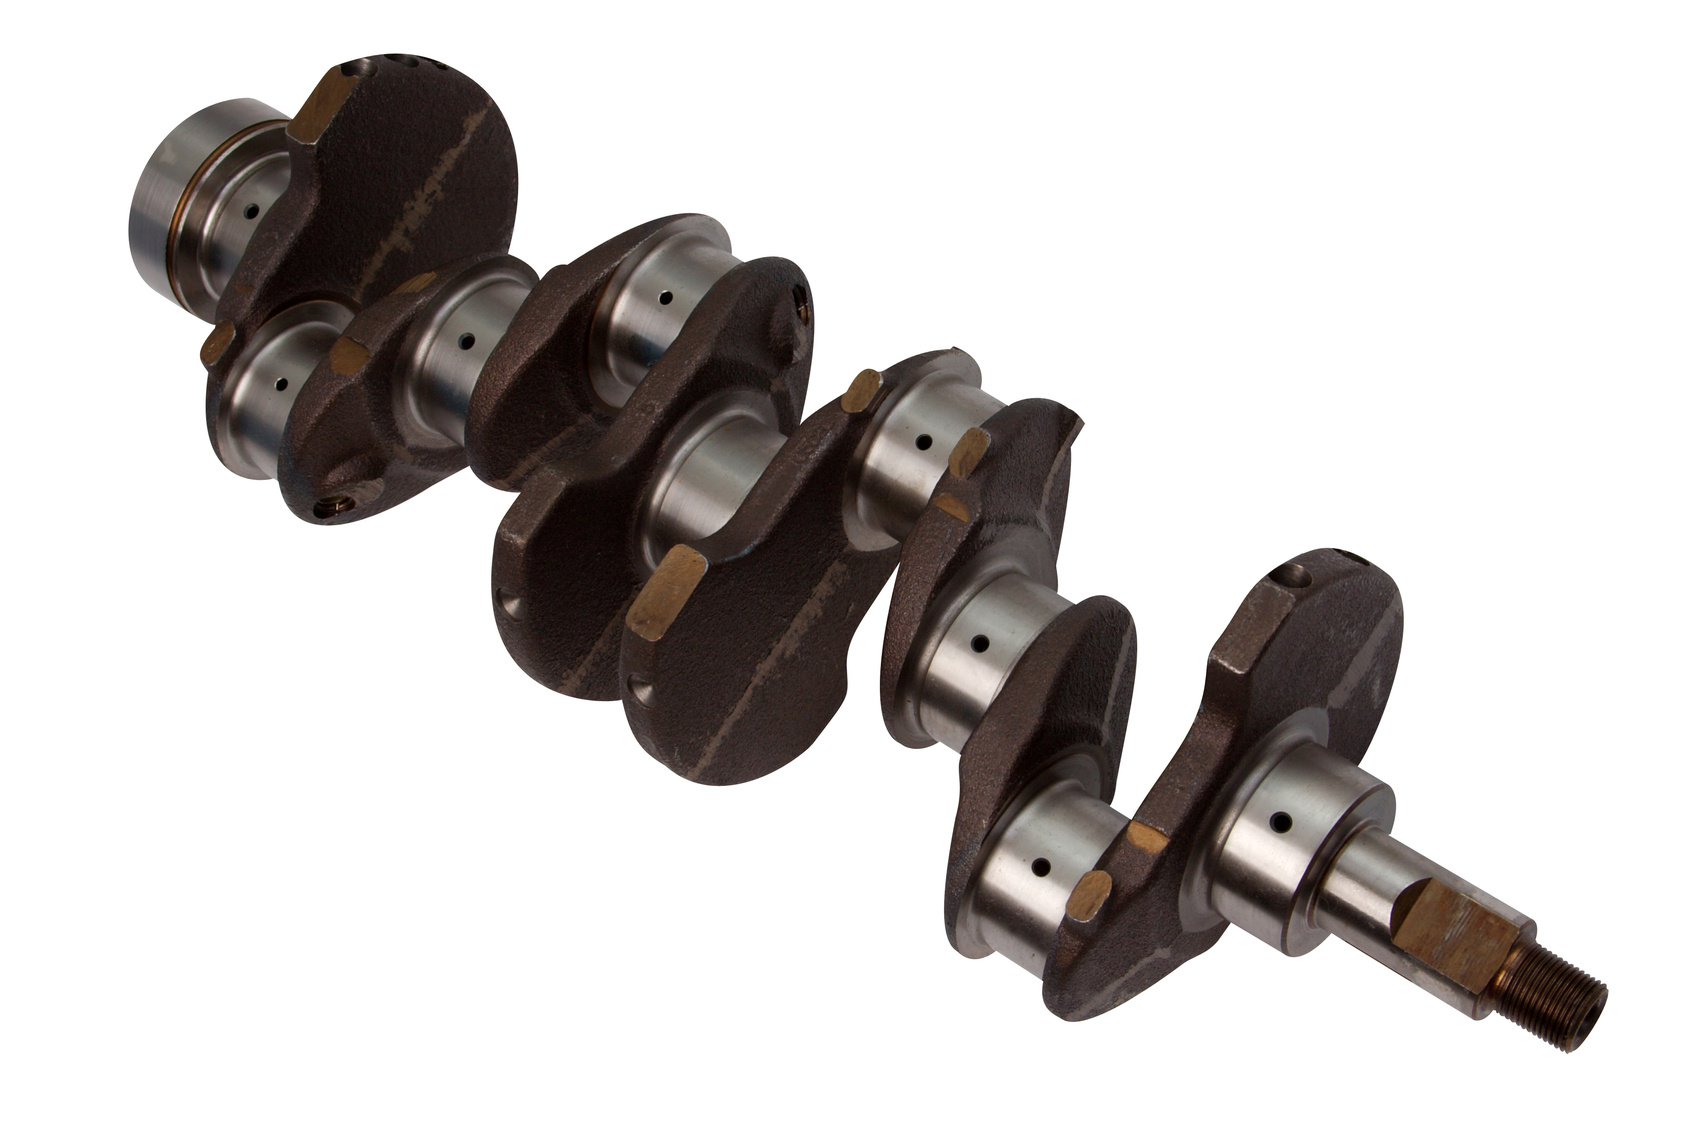 Spare Parts For Heavy Duty Trucks Trailers Machinery